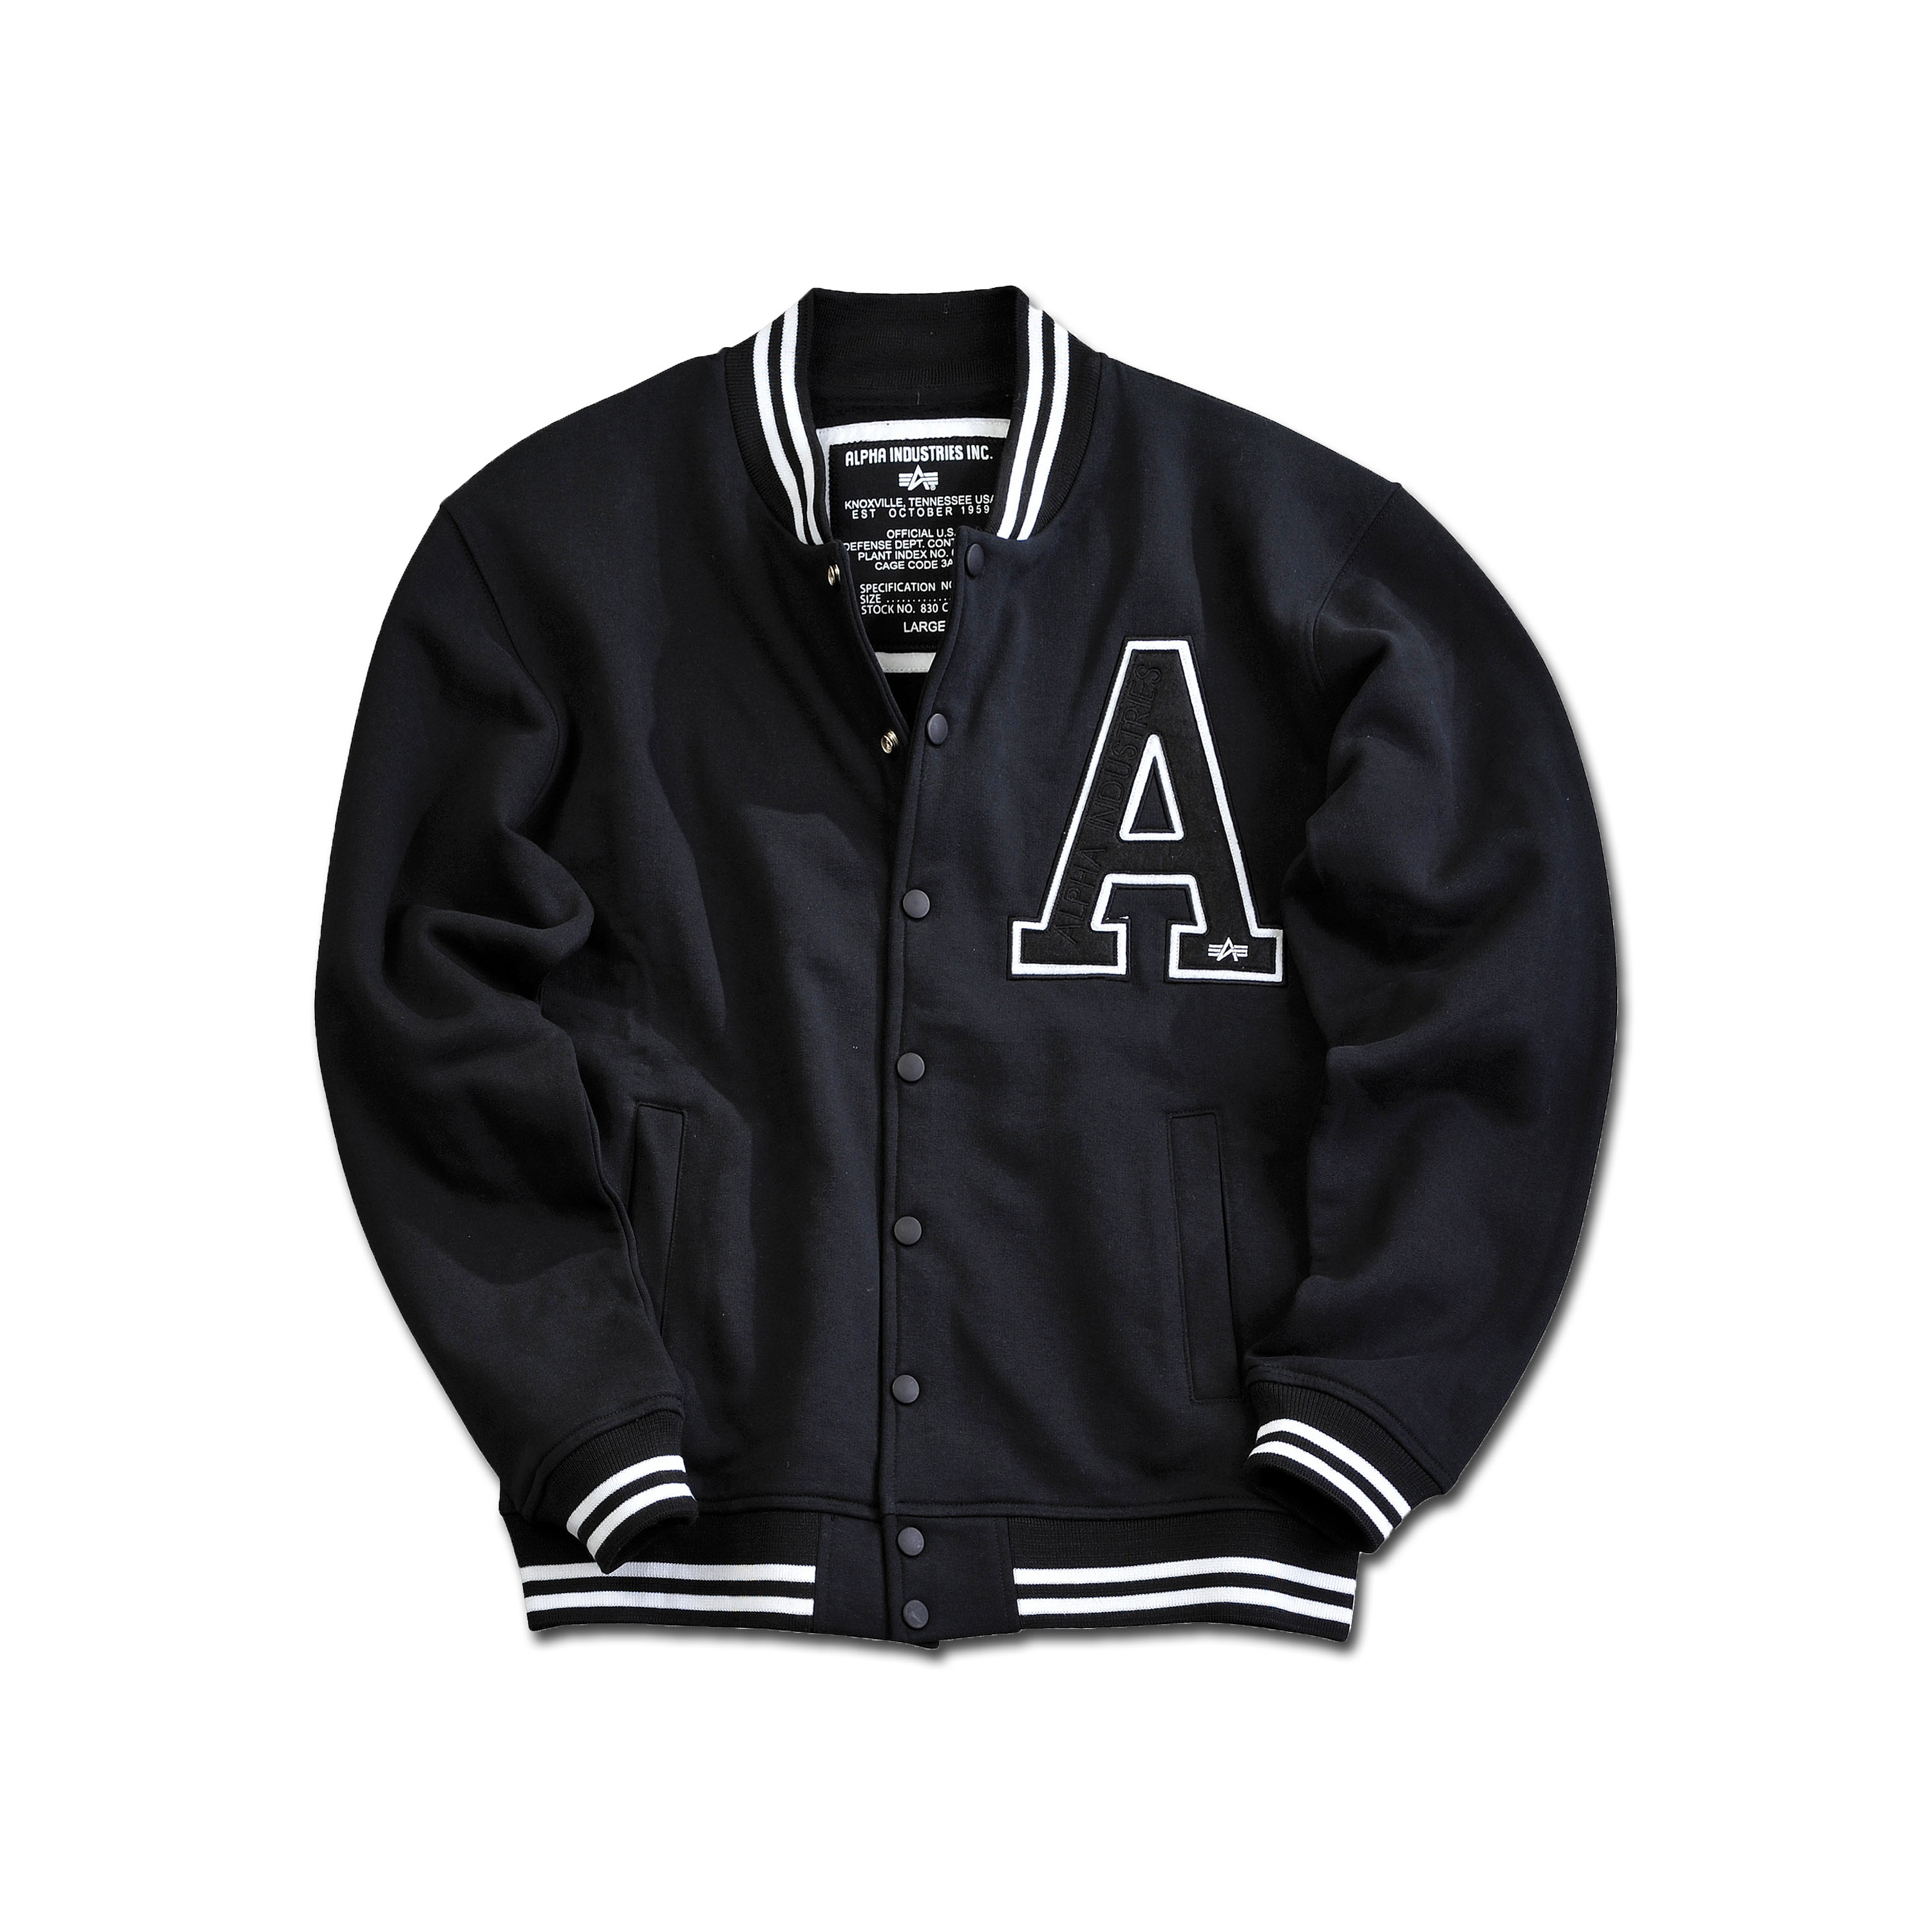 Giacca Academy, Alpha Industries, colore nero